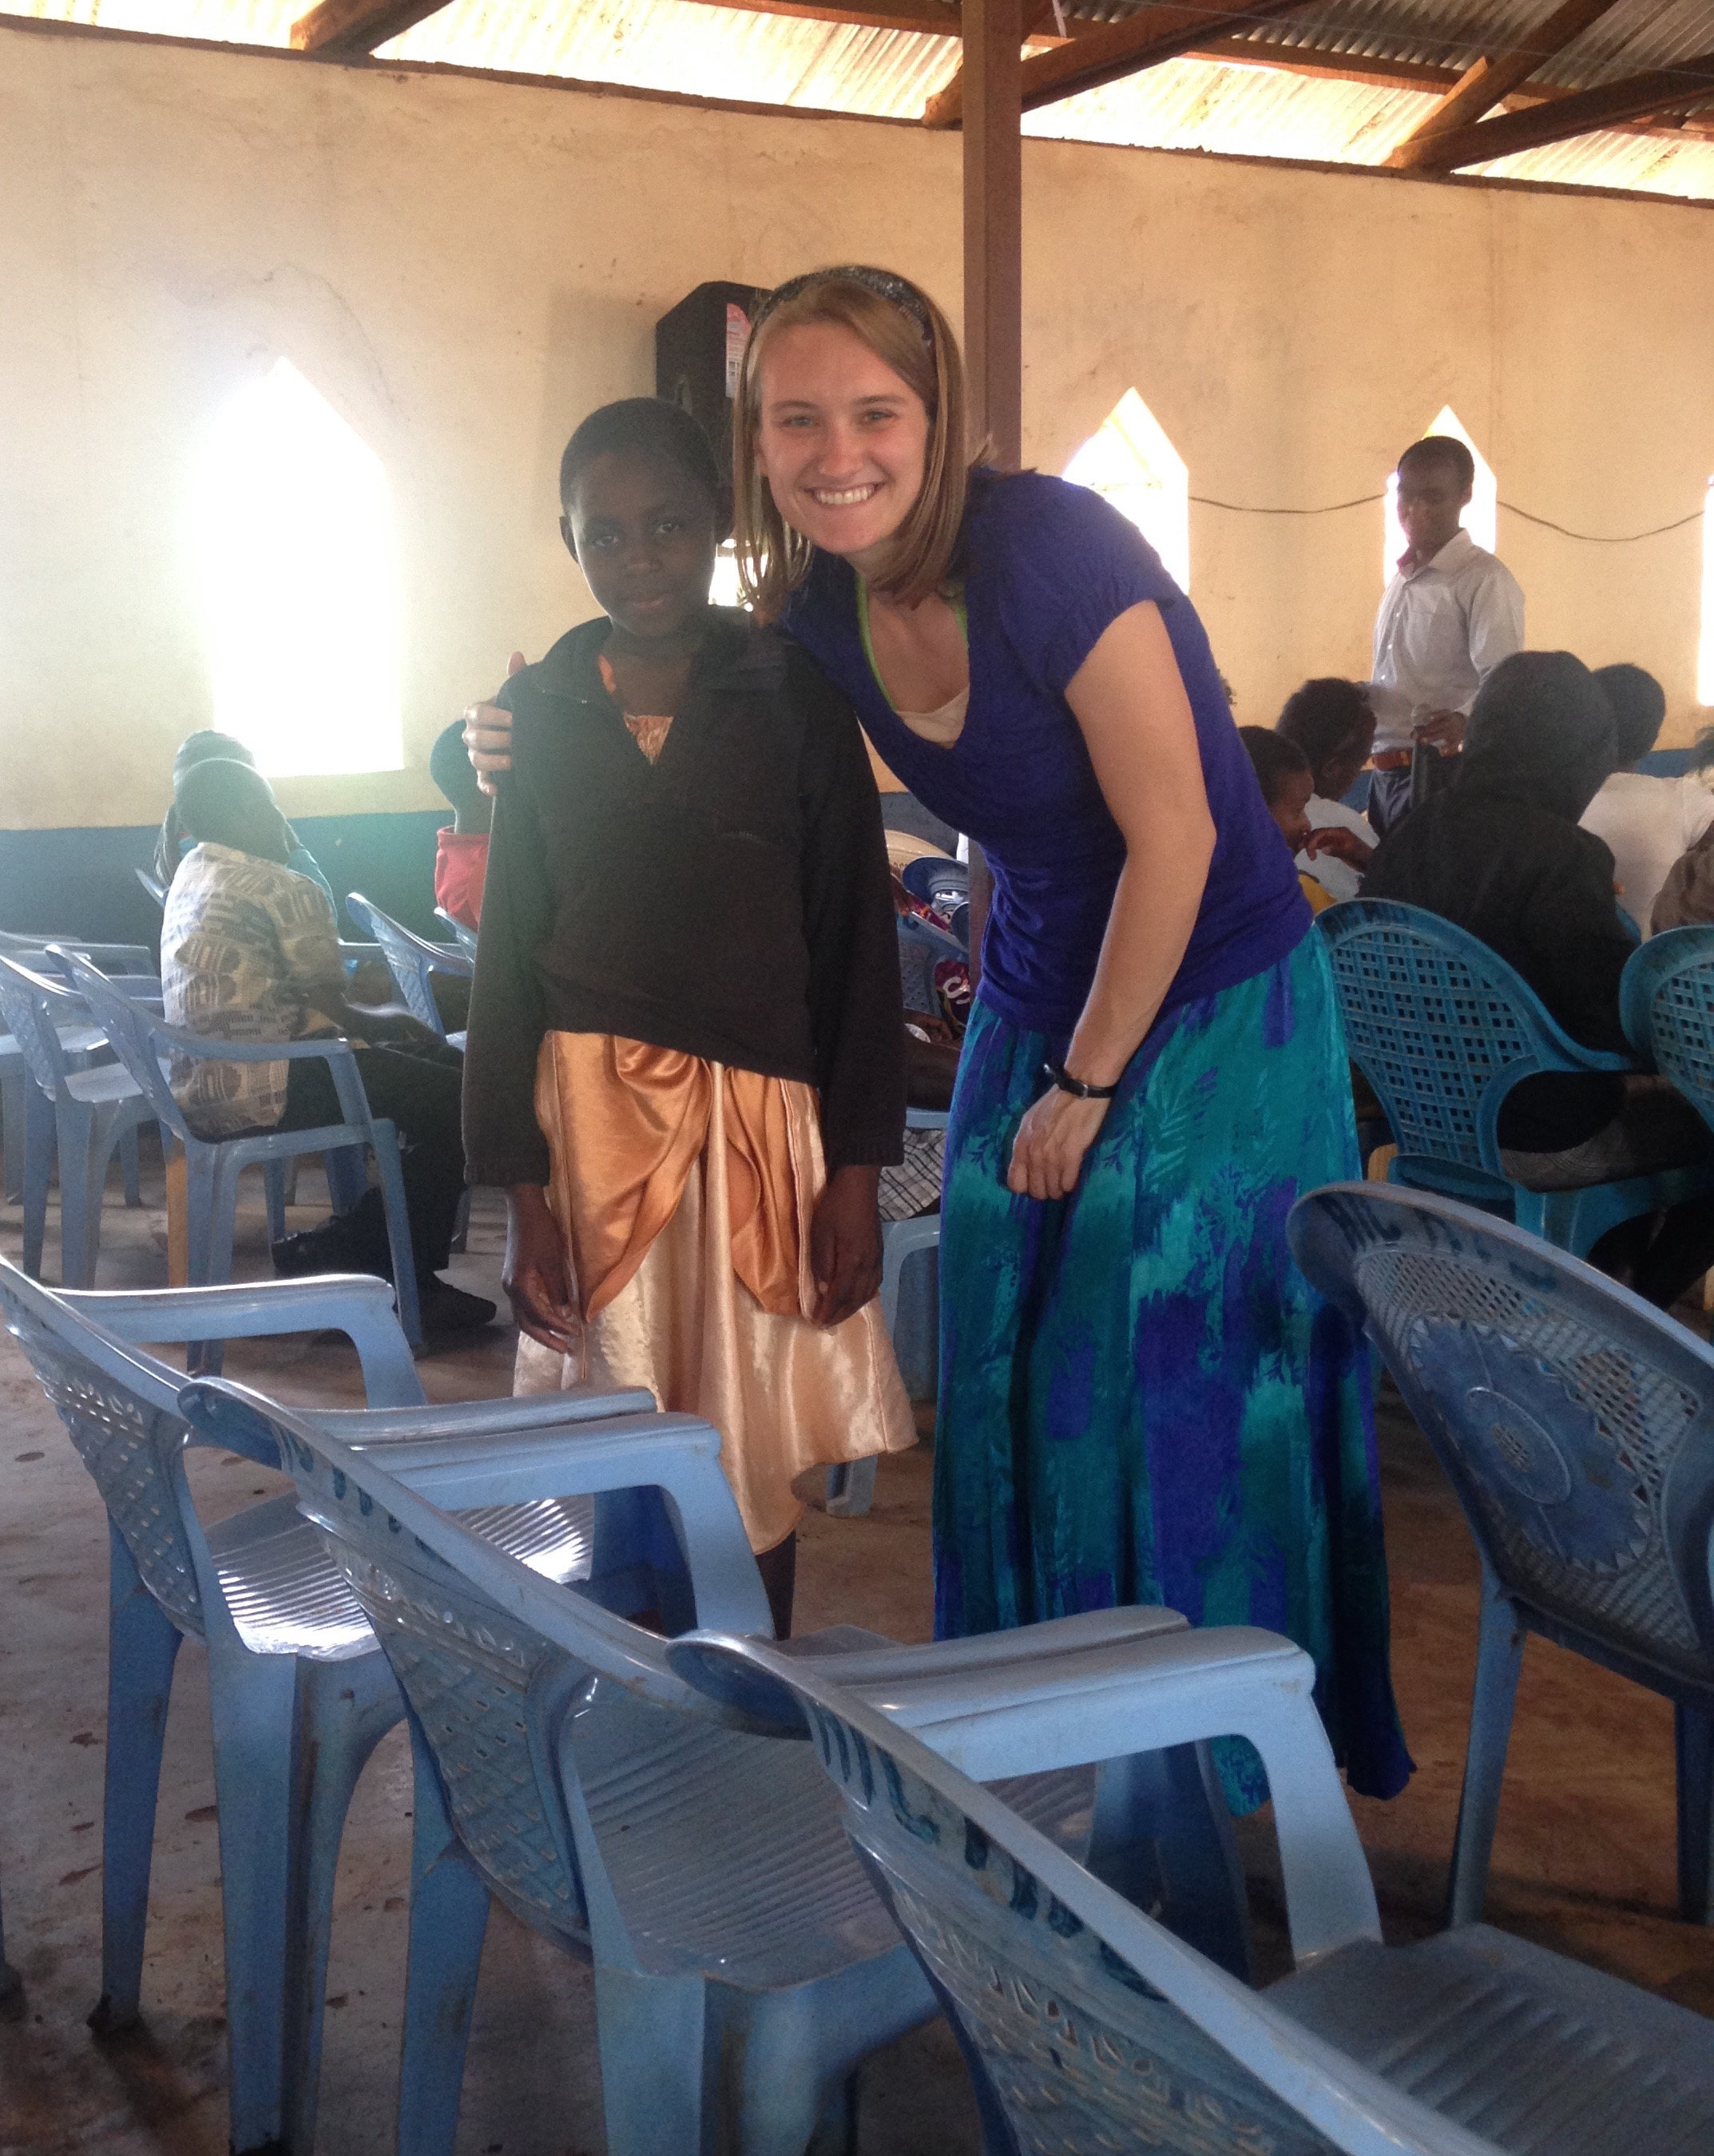 This past November, Jen got to go back to Kiu after two and a half years. What a gift!